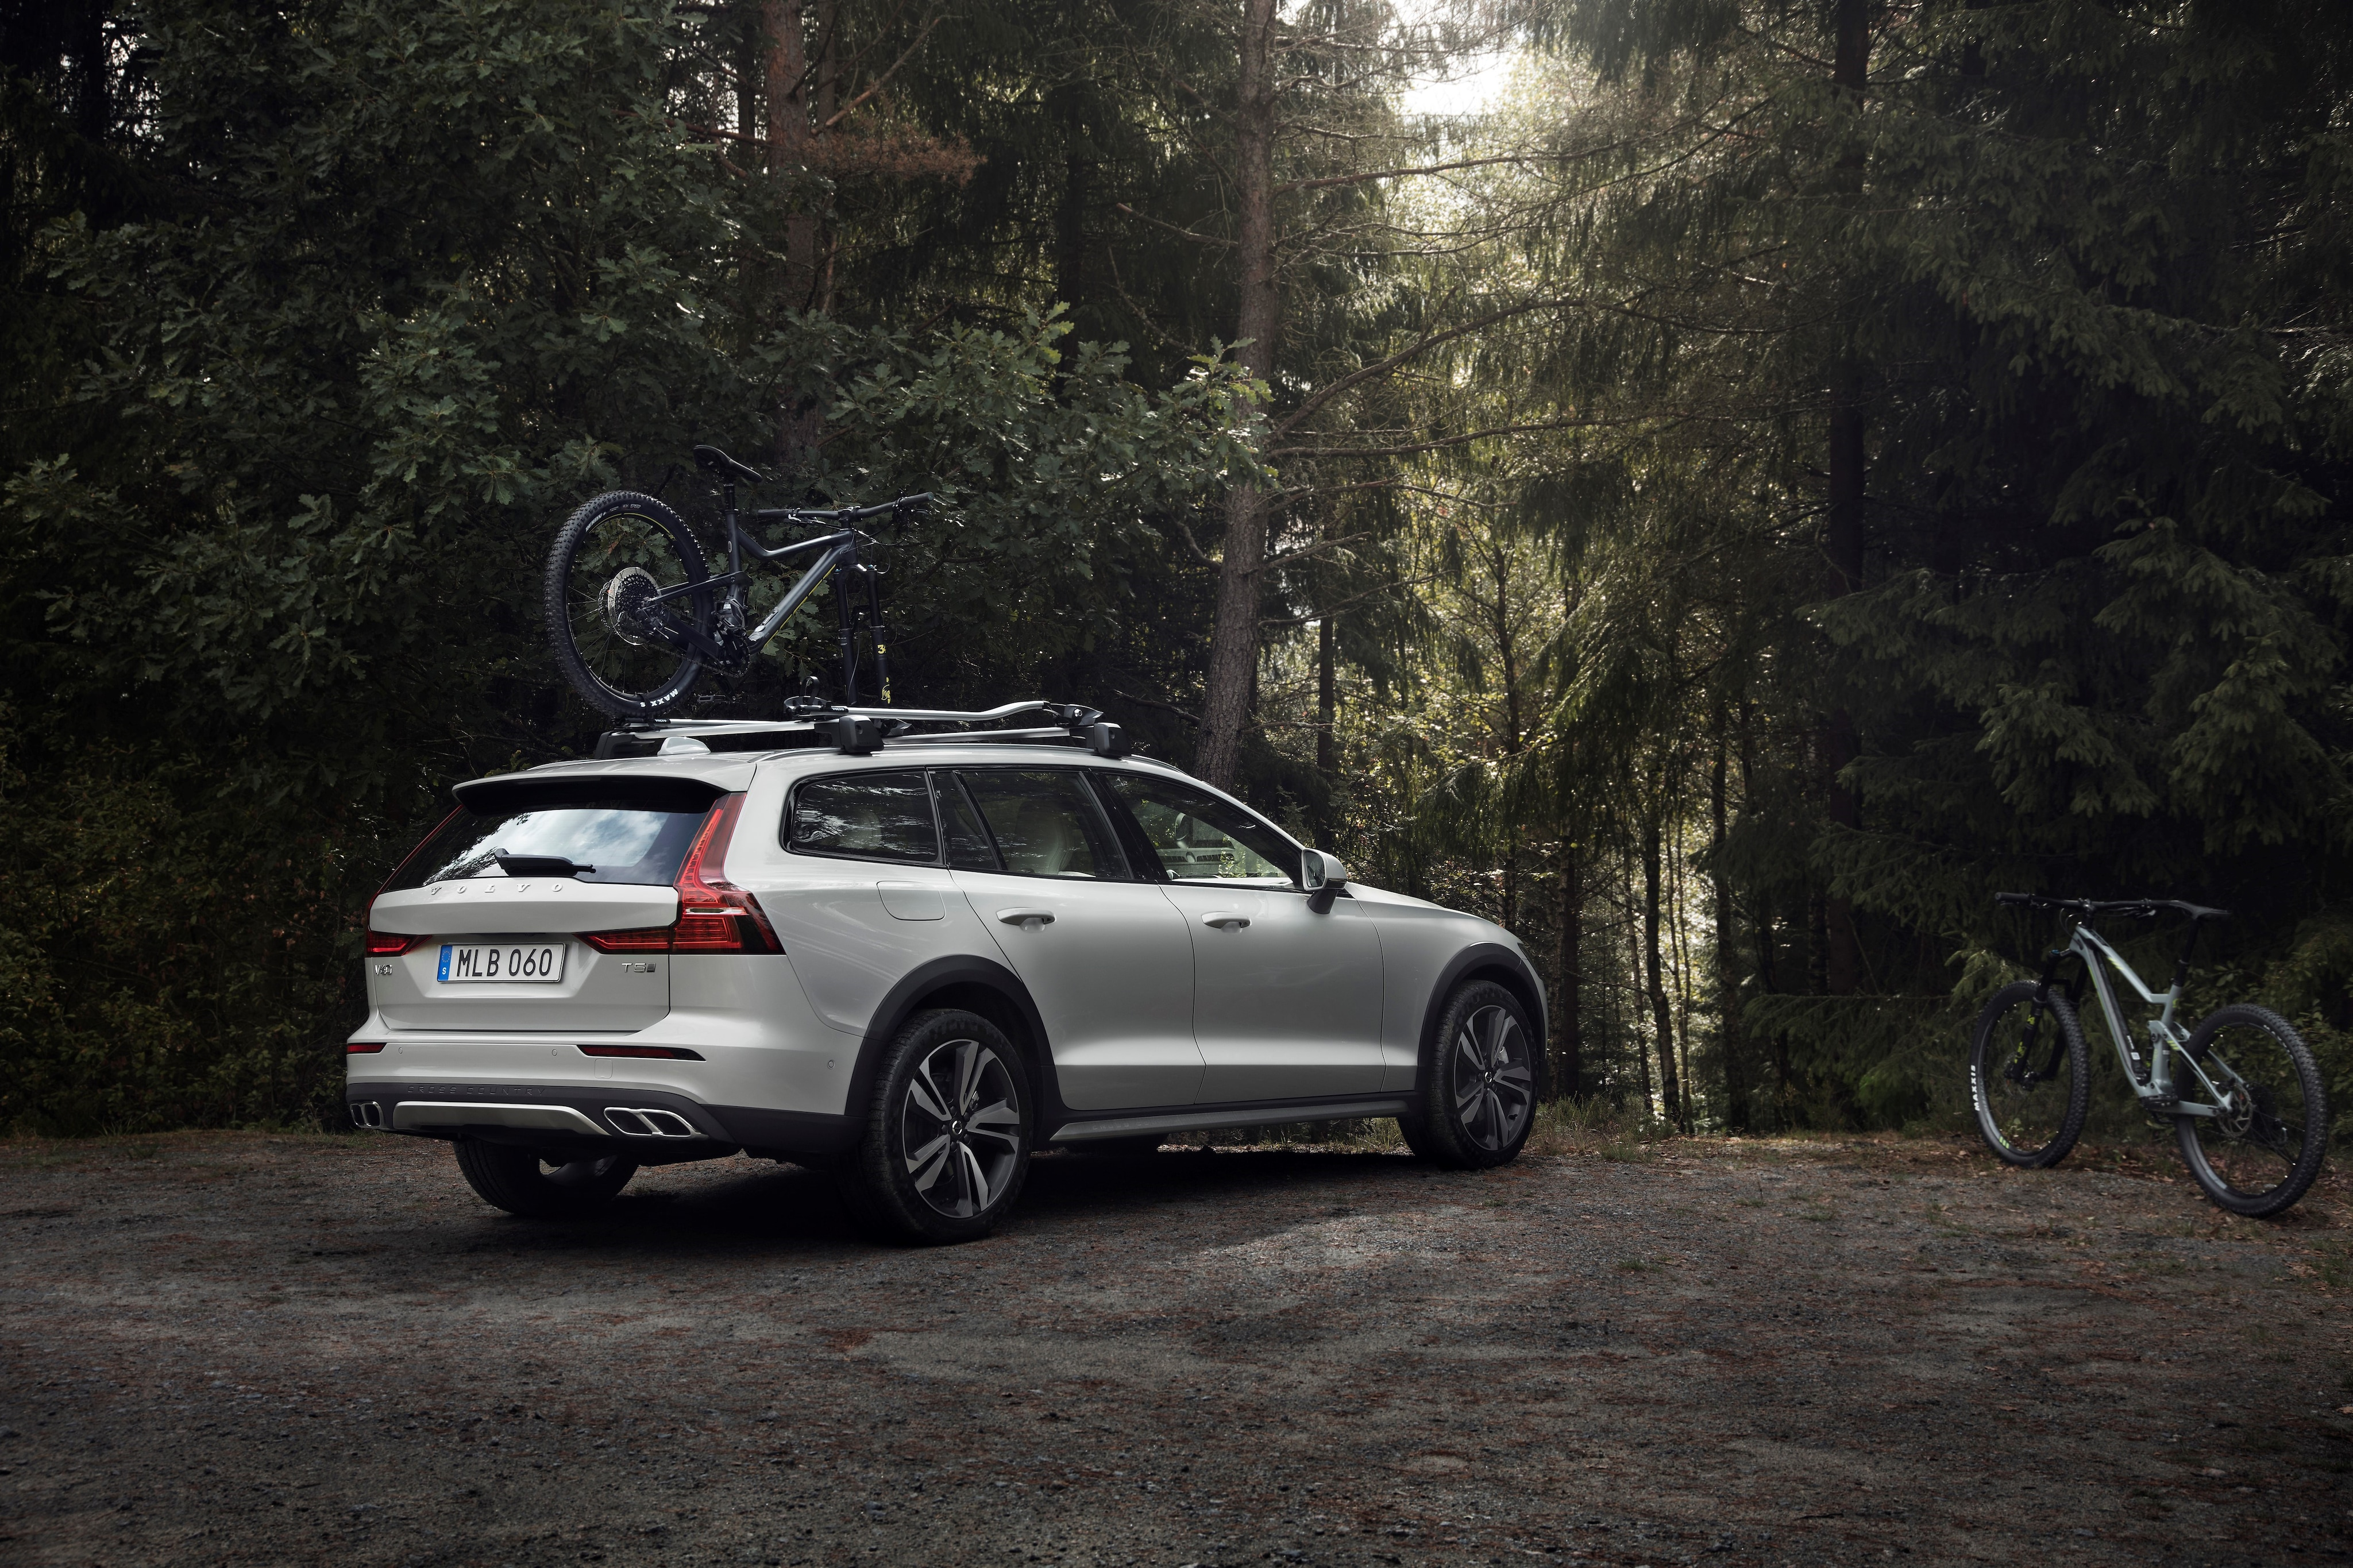 The 2019 Volvo V60 Cross Country is coming to Culver City Volvo Cars